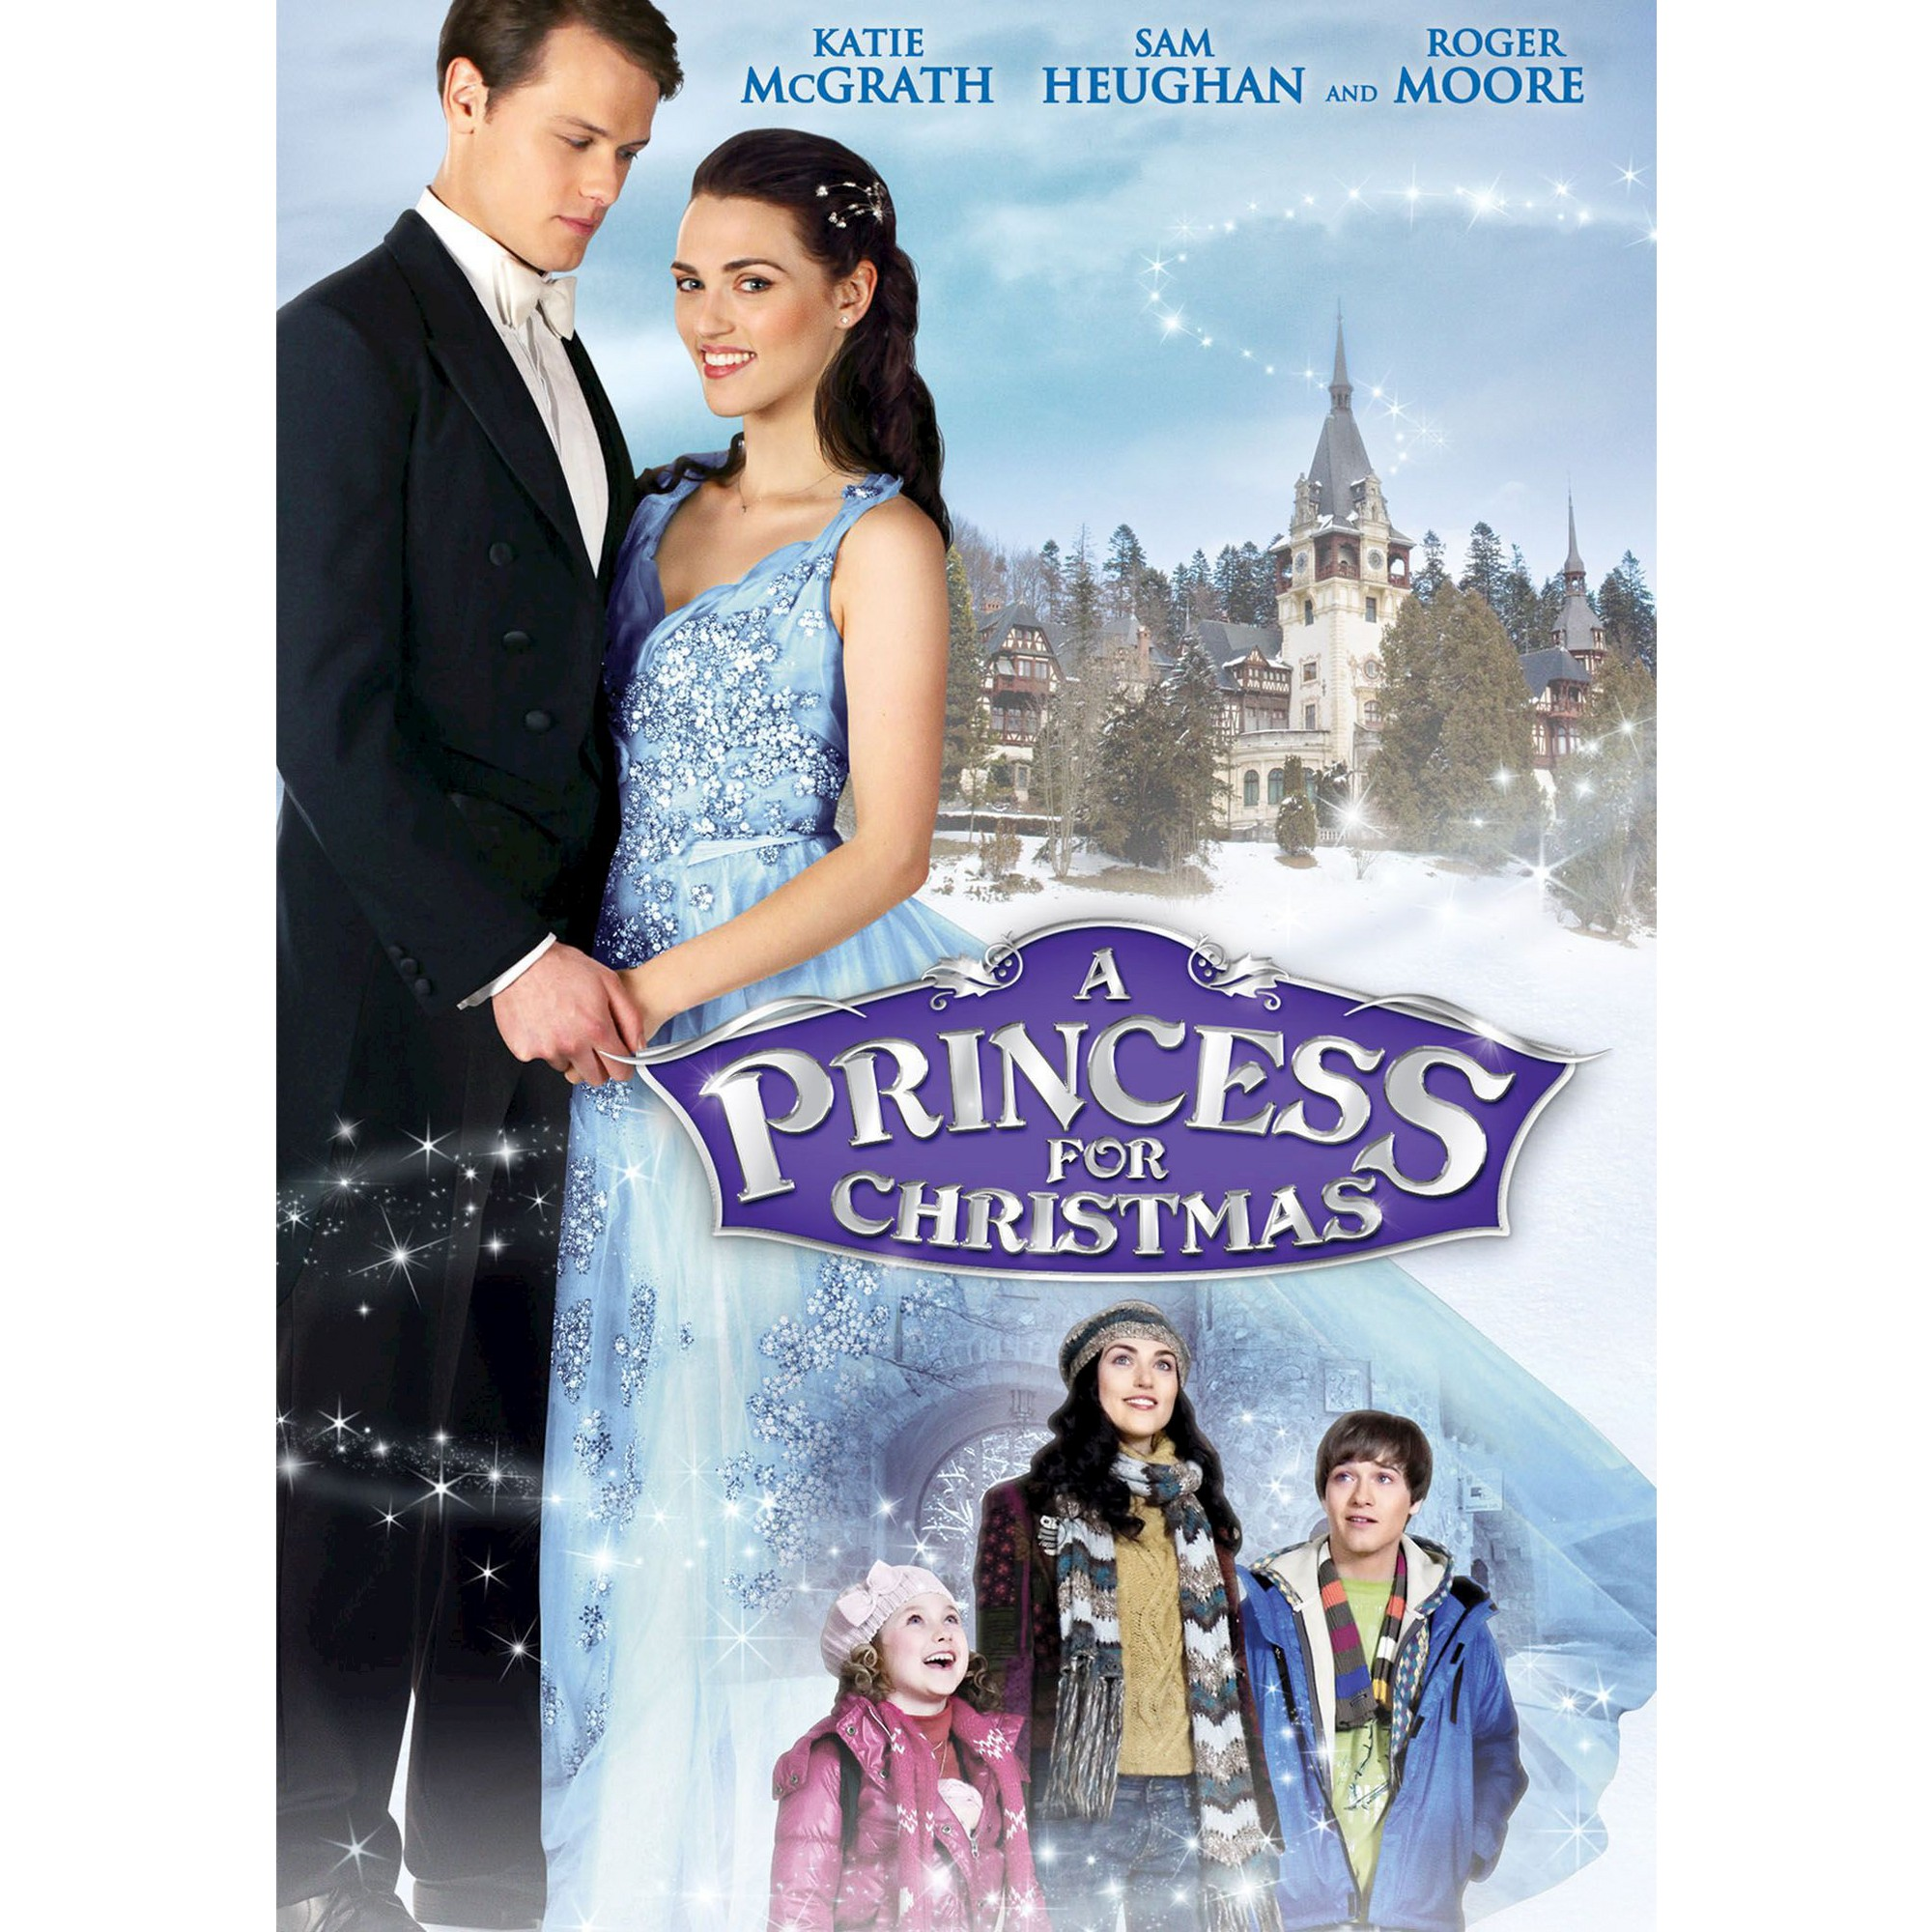 A Princess For Christmas Movies Meu Principe Lindo Sam Heughan